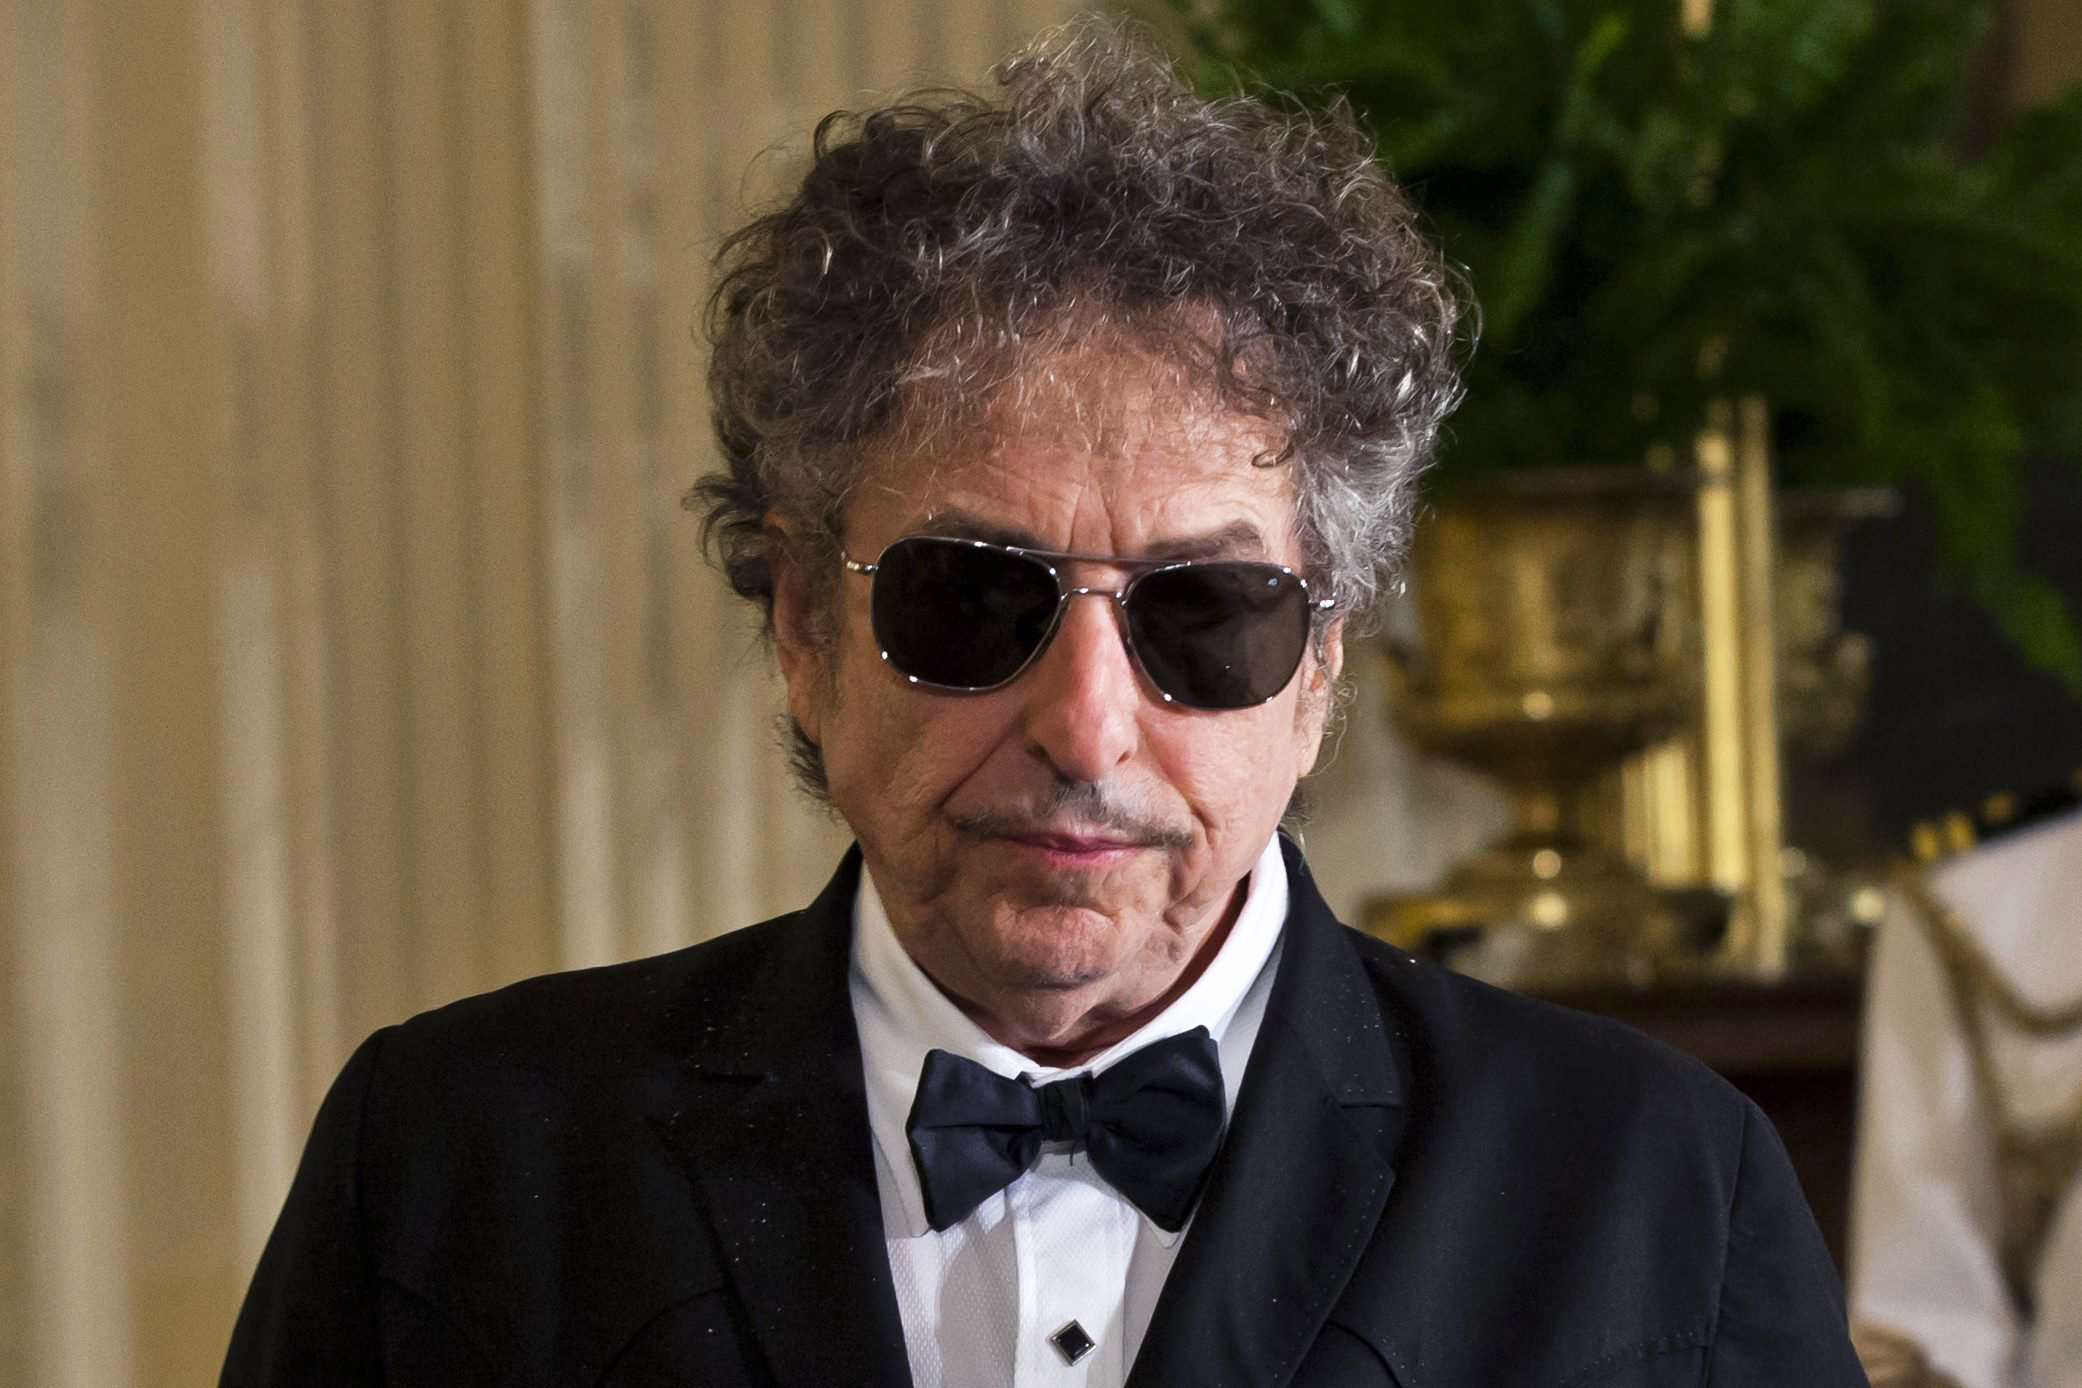 Folk music legend Bob Dylan in the East Room of the White House in Washington, D.C., on May 29, 2012. Dylan won the 2016 Nobel Prize in Literature, the Swedish Academy announced in Stockholm, on Oct. 13, 2016.